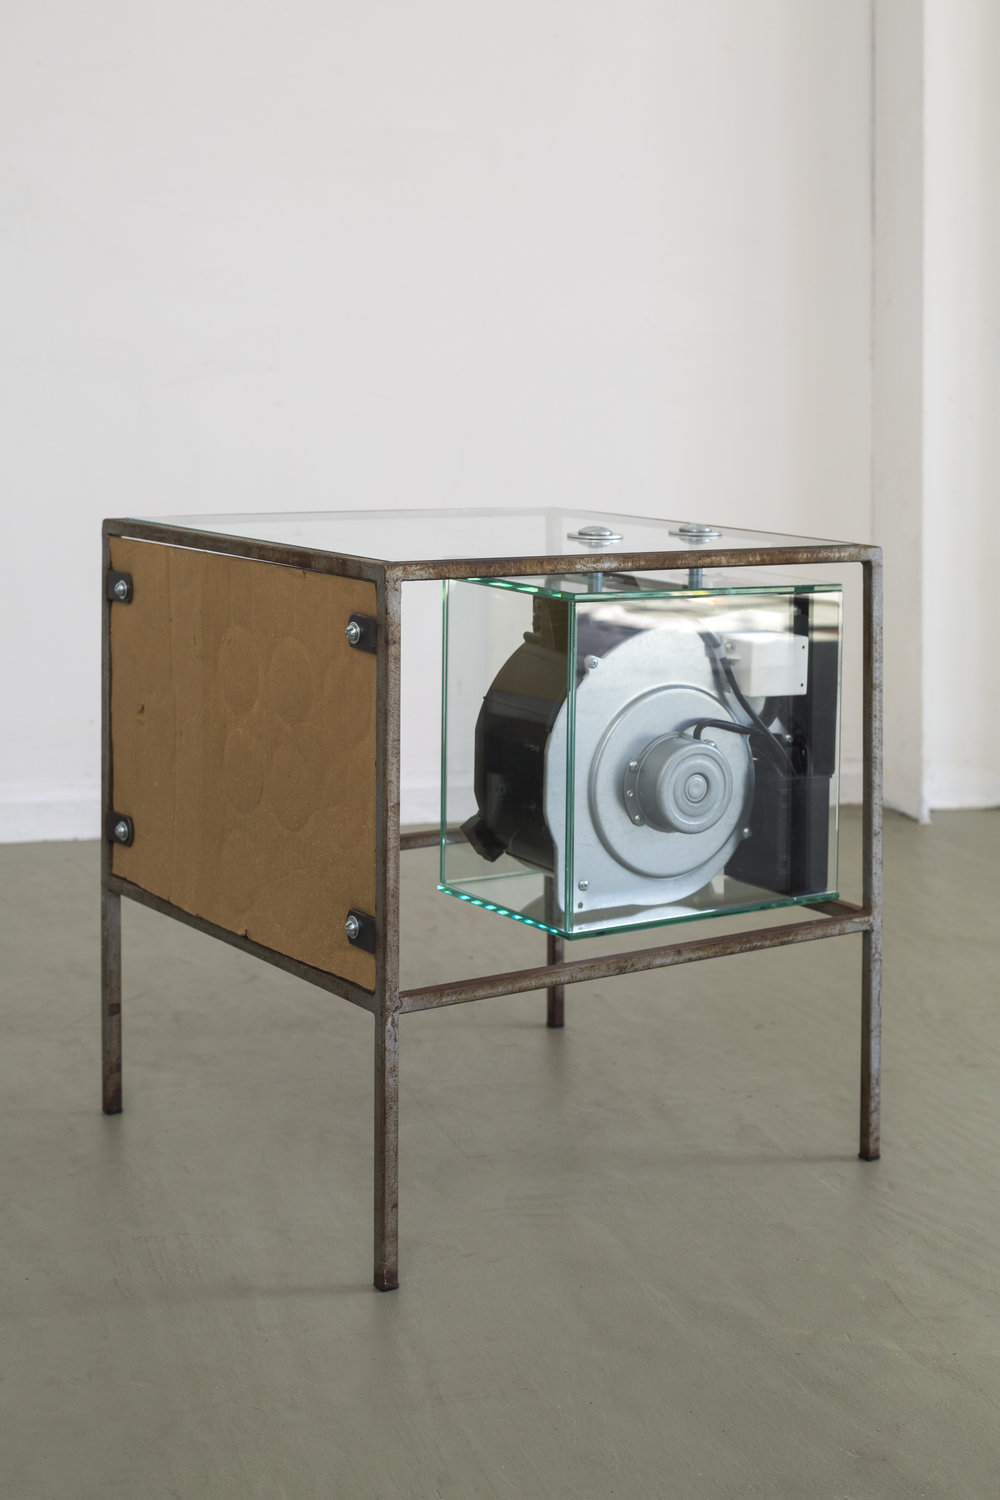 Transport 1918,  2015. Steel table frame, centrifugal fan blower system, polystyrene sign, cardboard, adhesive advertising mesh, various hardware. 18 x 18 x 21 in.